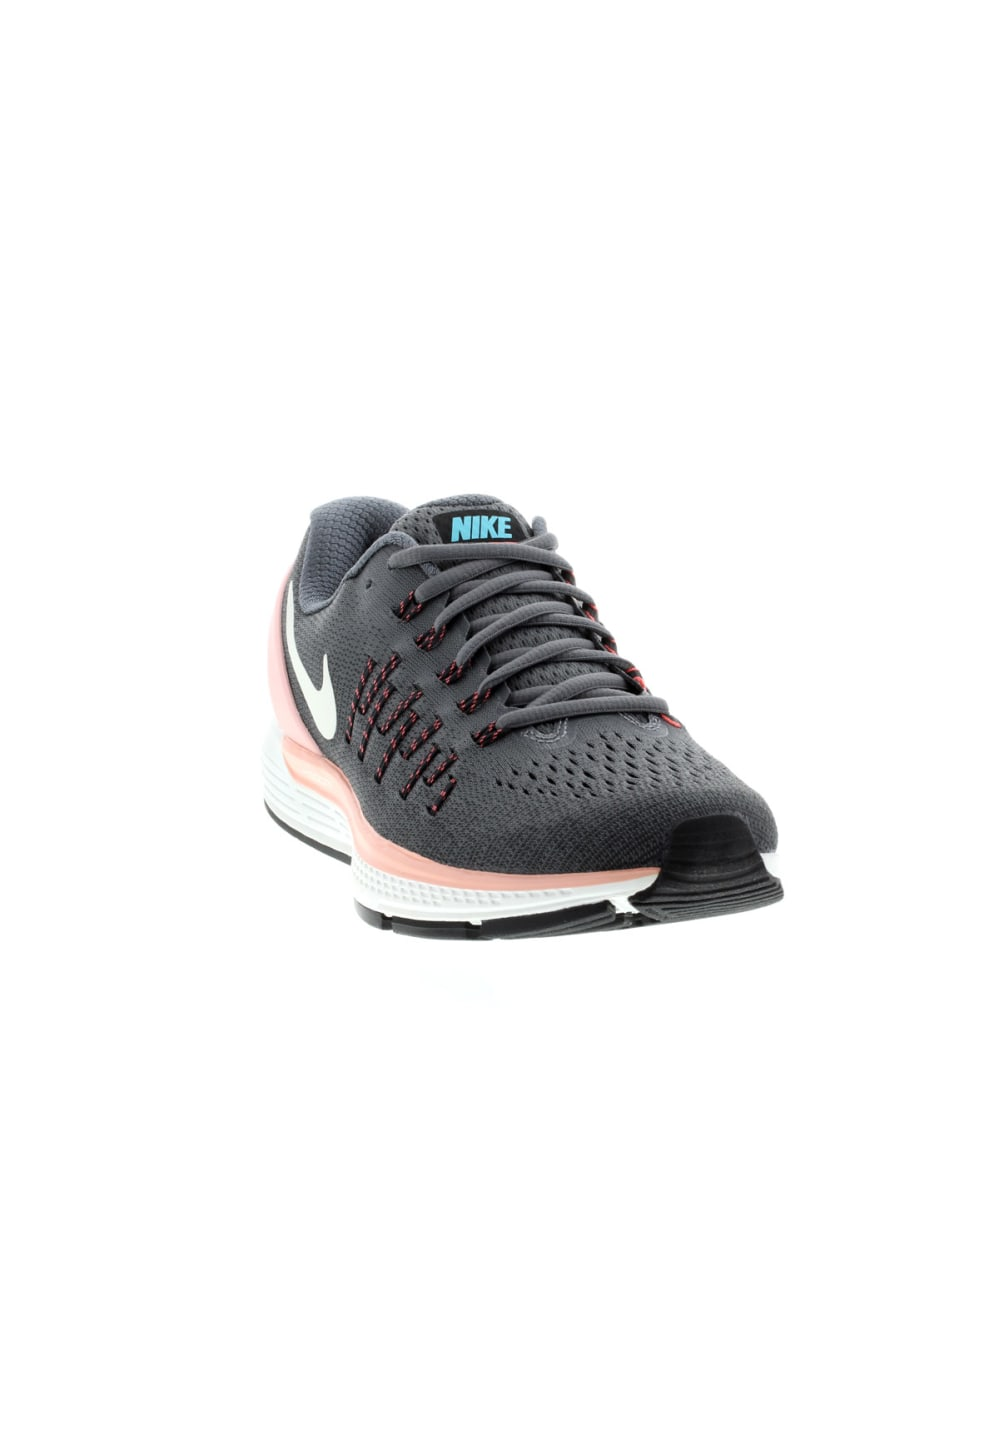 Nike Air Zoom Odyssey 2 Chaussures running pour Femme Gris